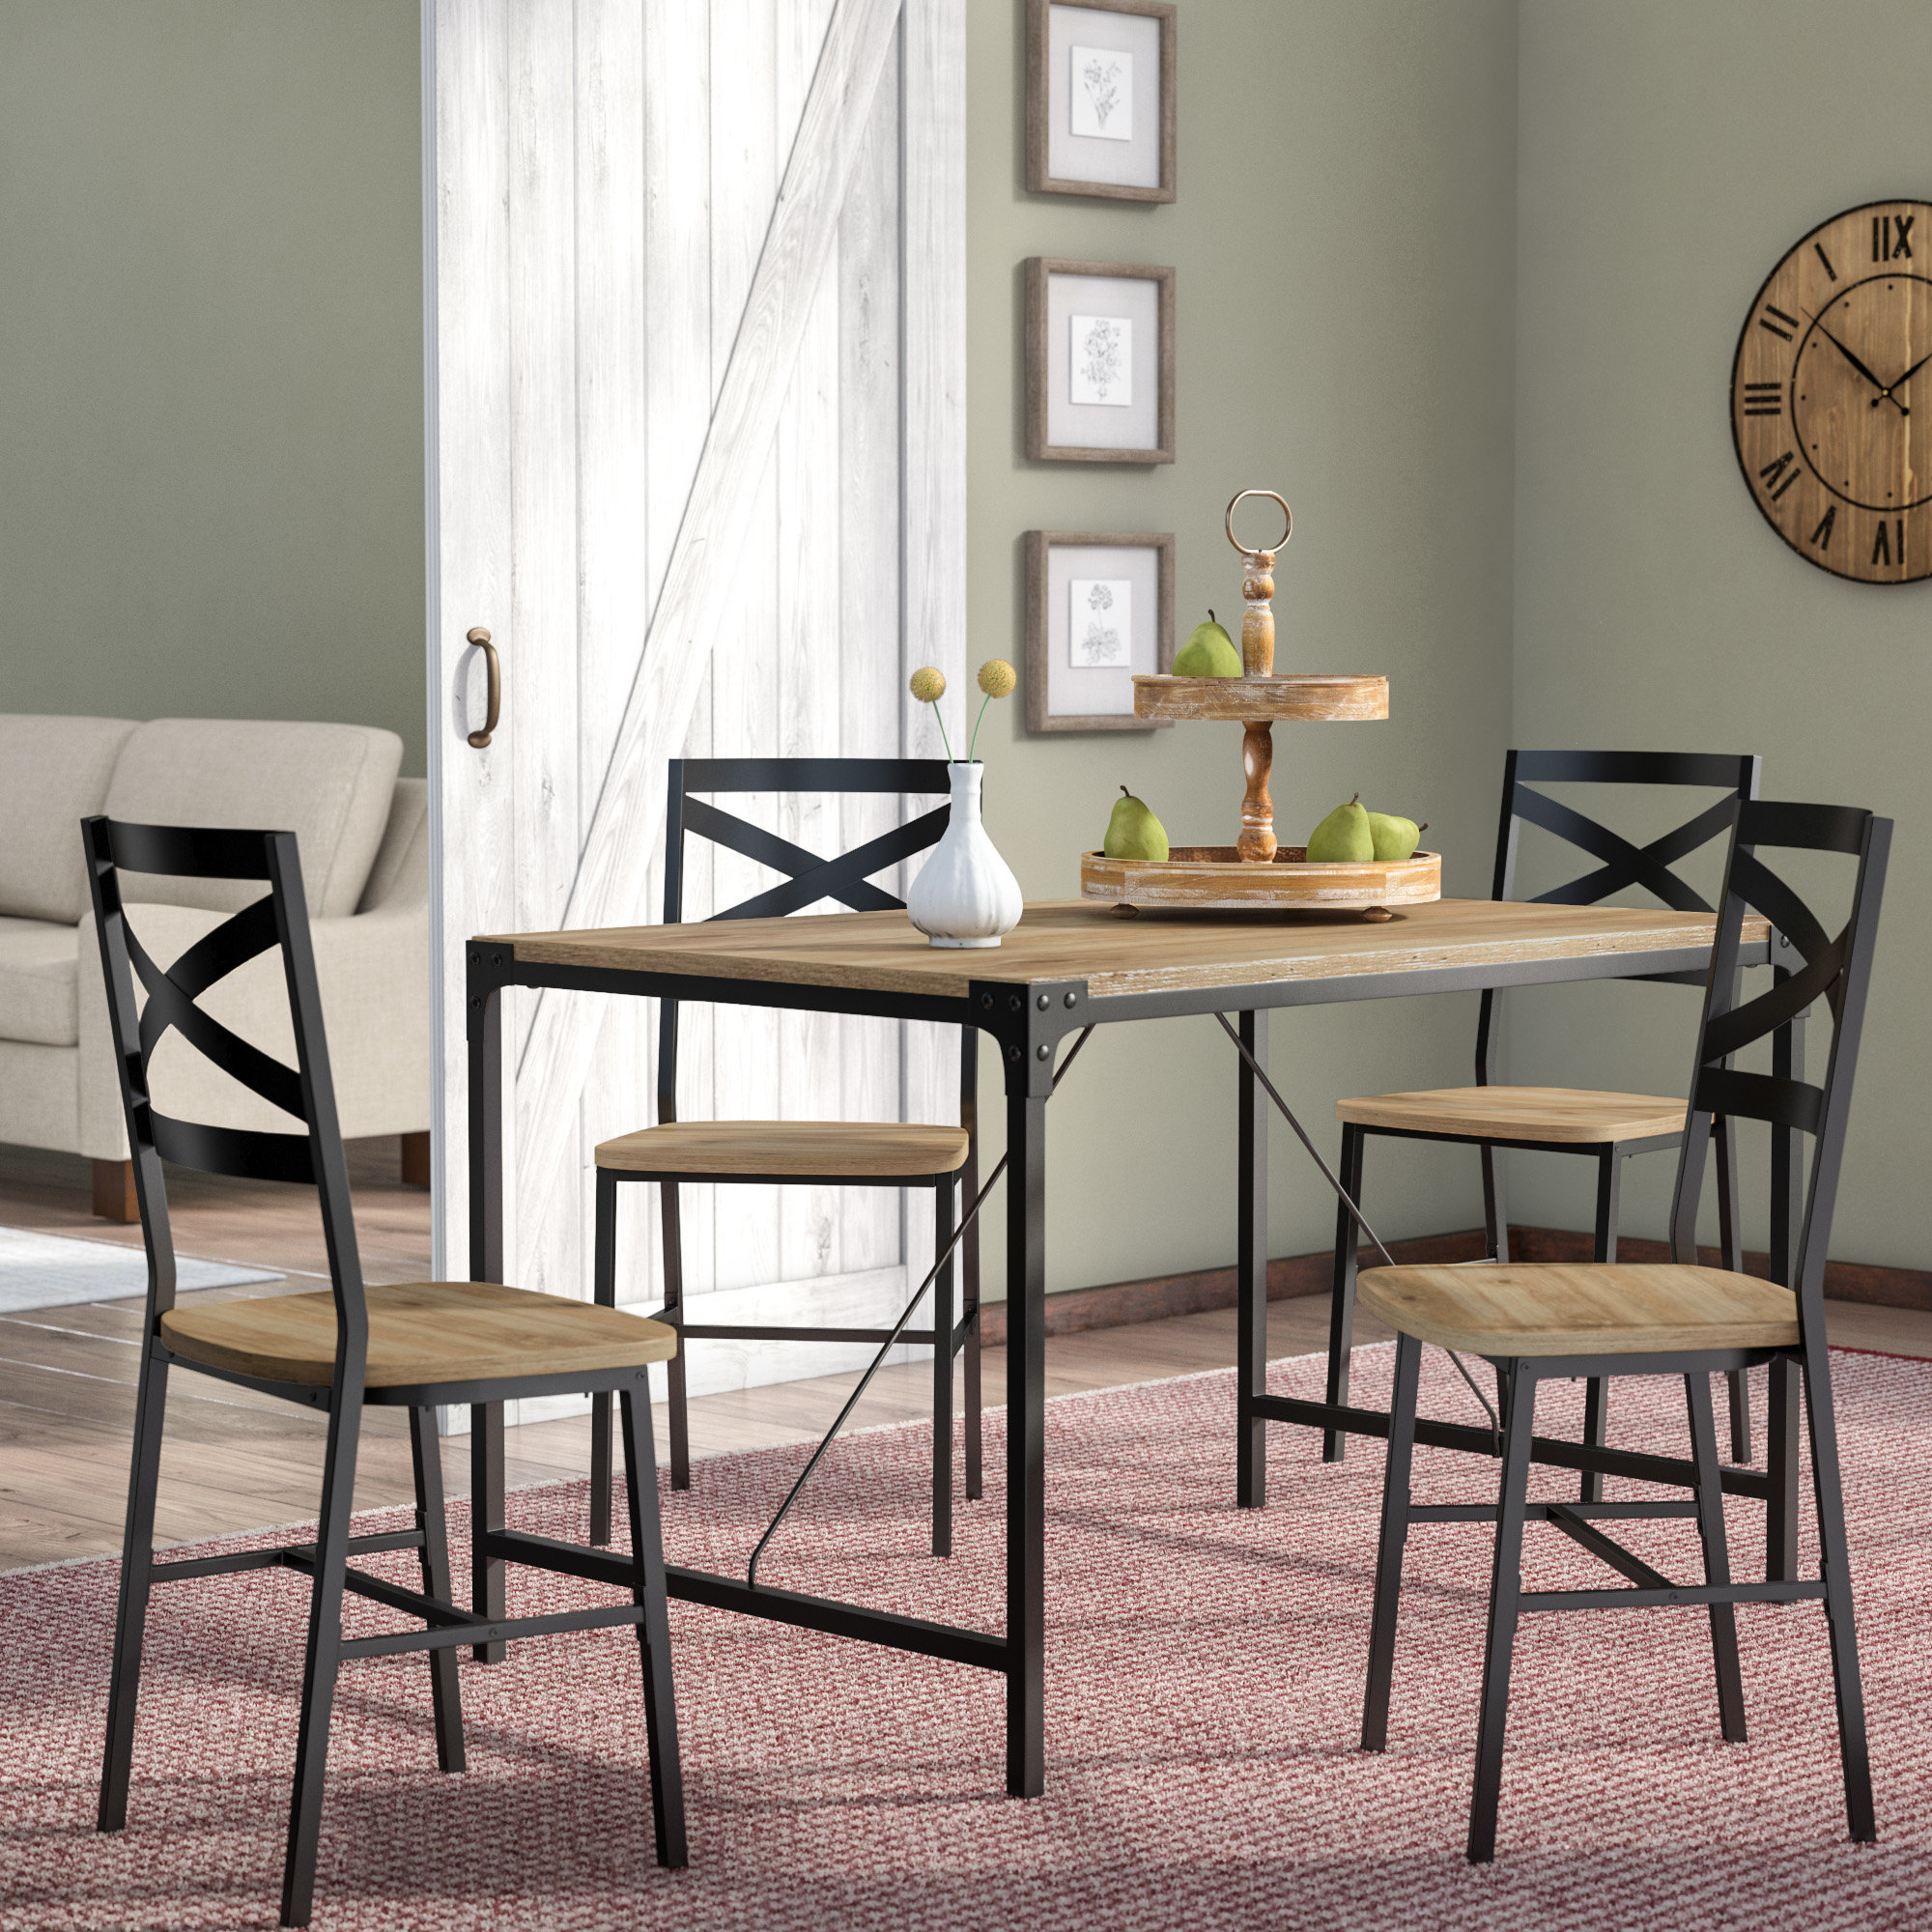 Widely Used Samantha 5 Piece Dining Set With Middleport 5 Piece Dining Sets (View 20 of 20)